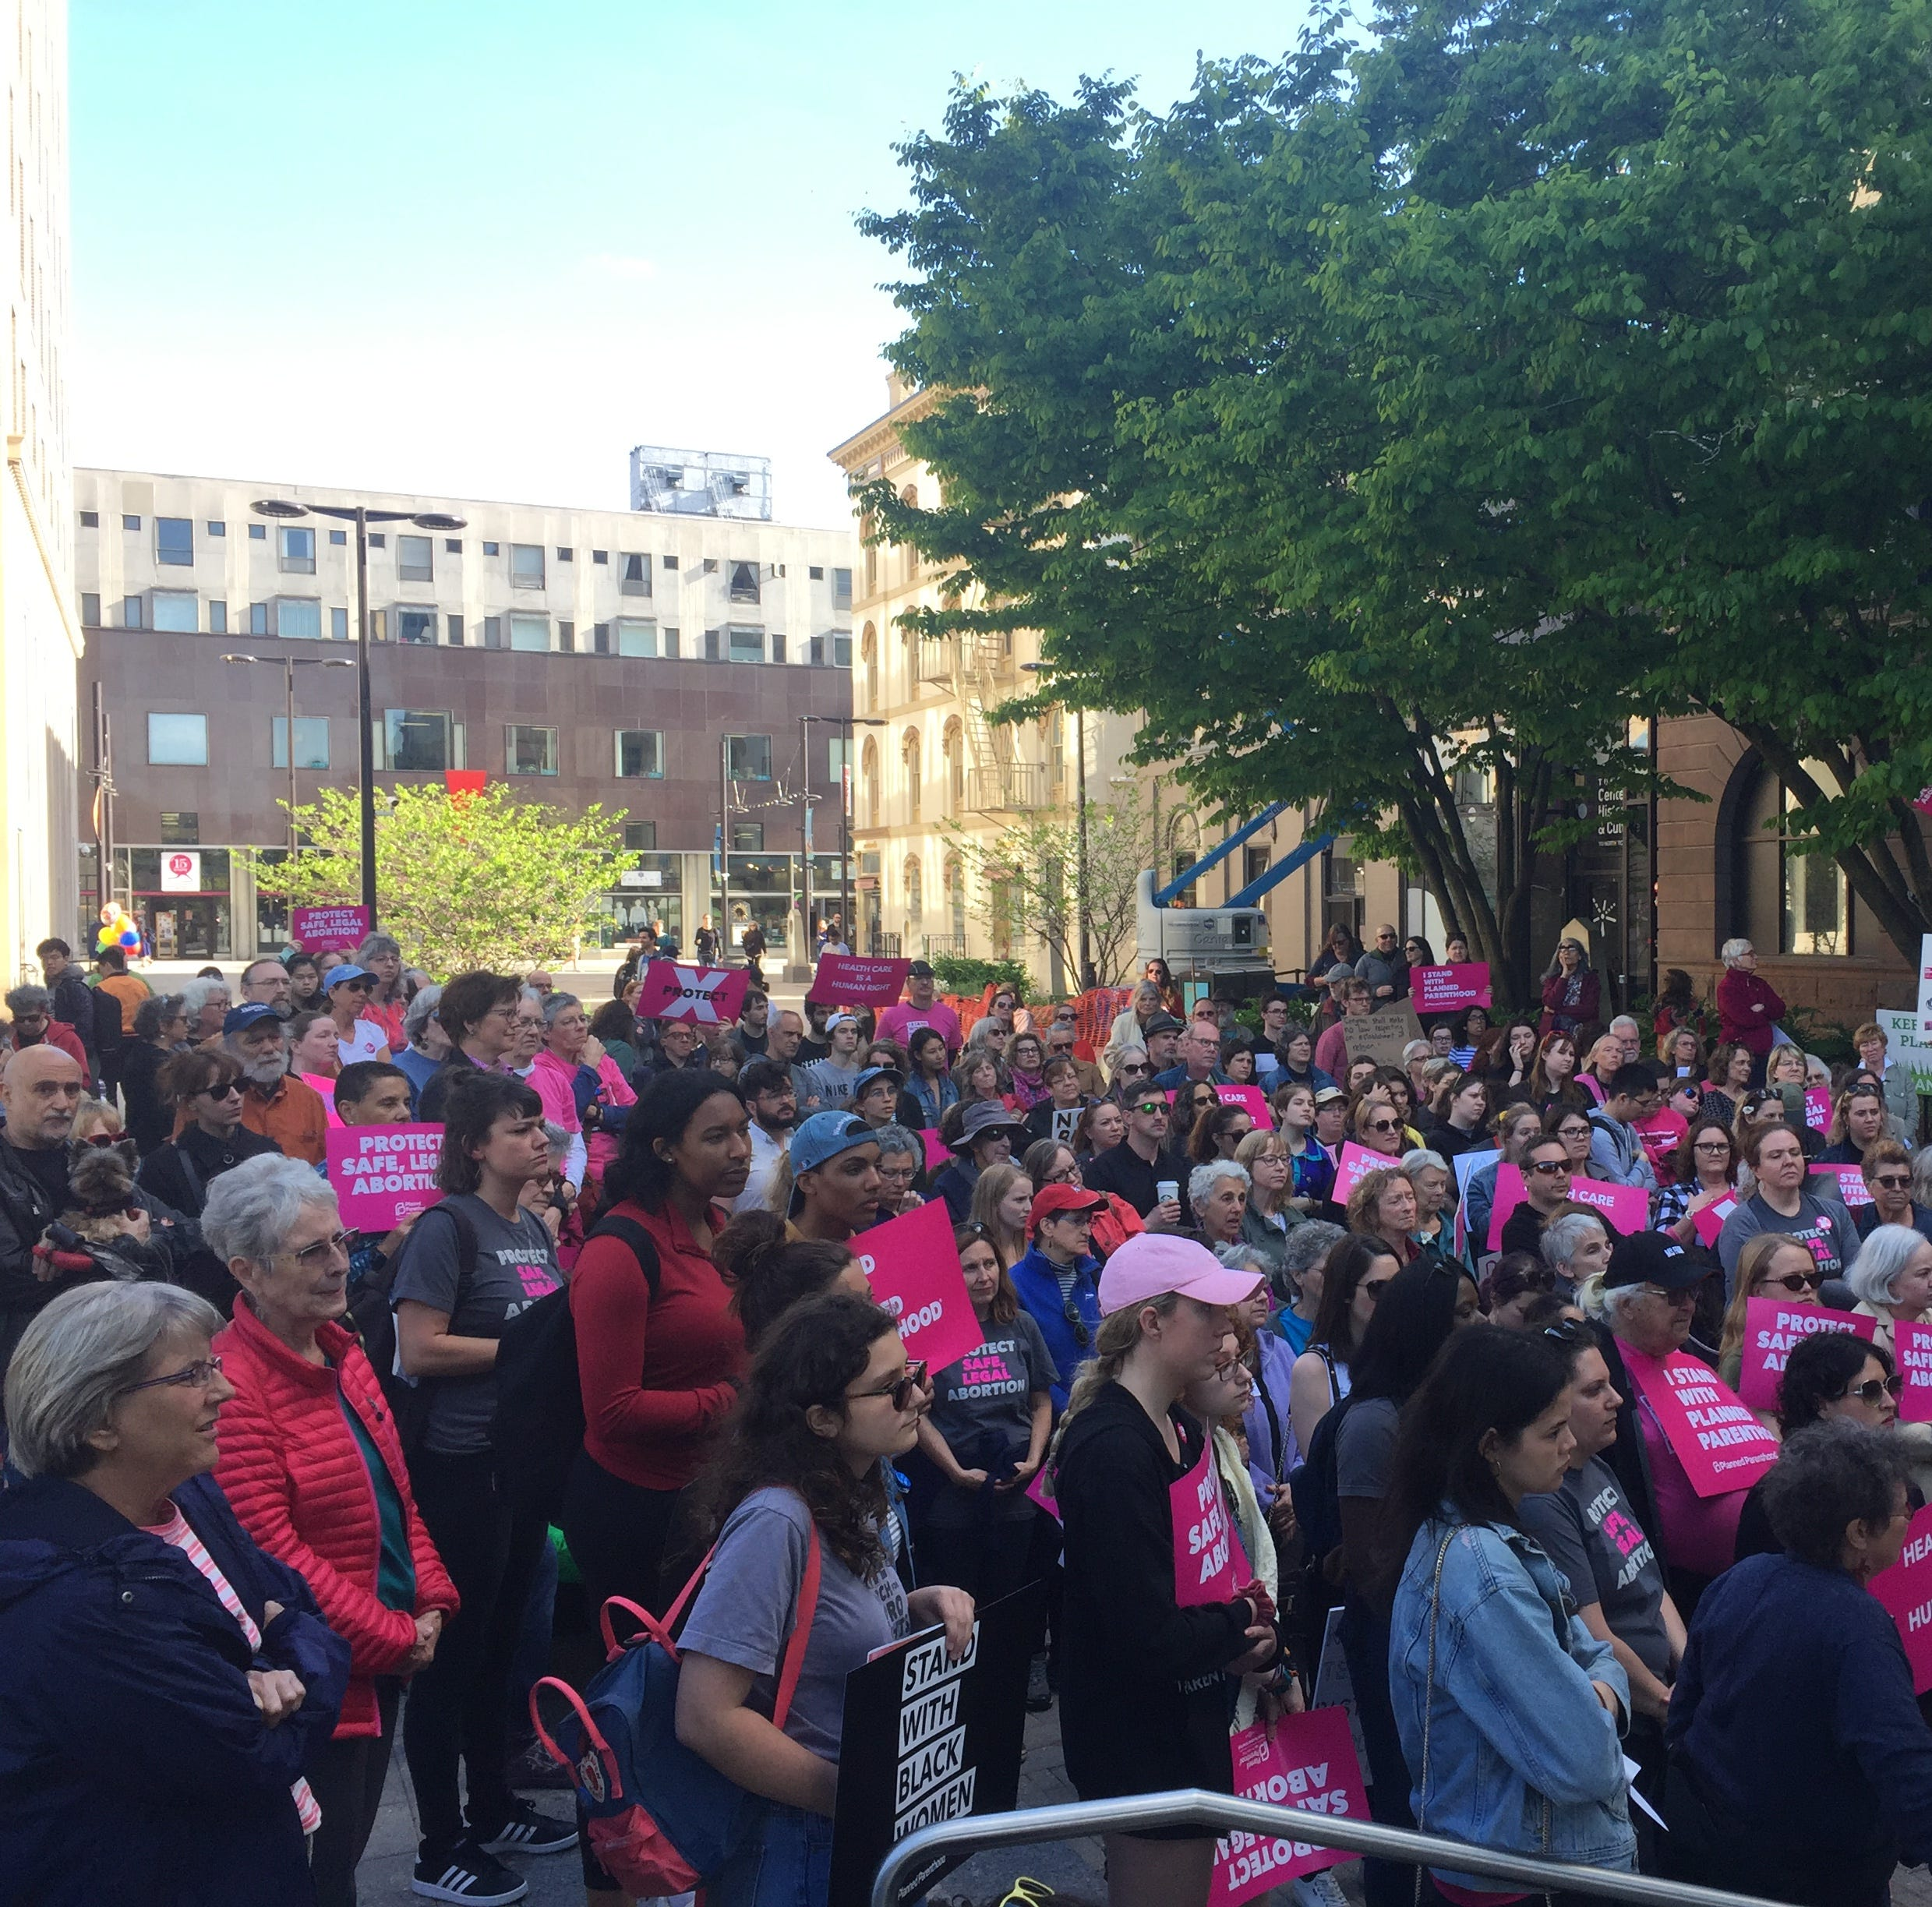 Planned Parenthood rallies on the Commons against abortion bans